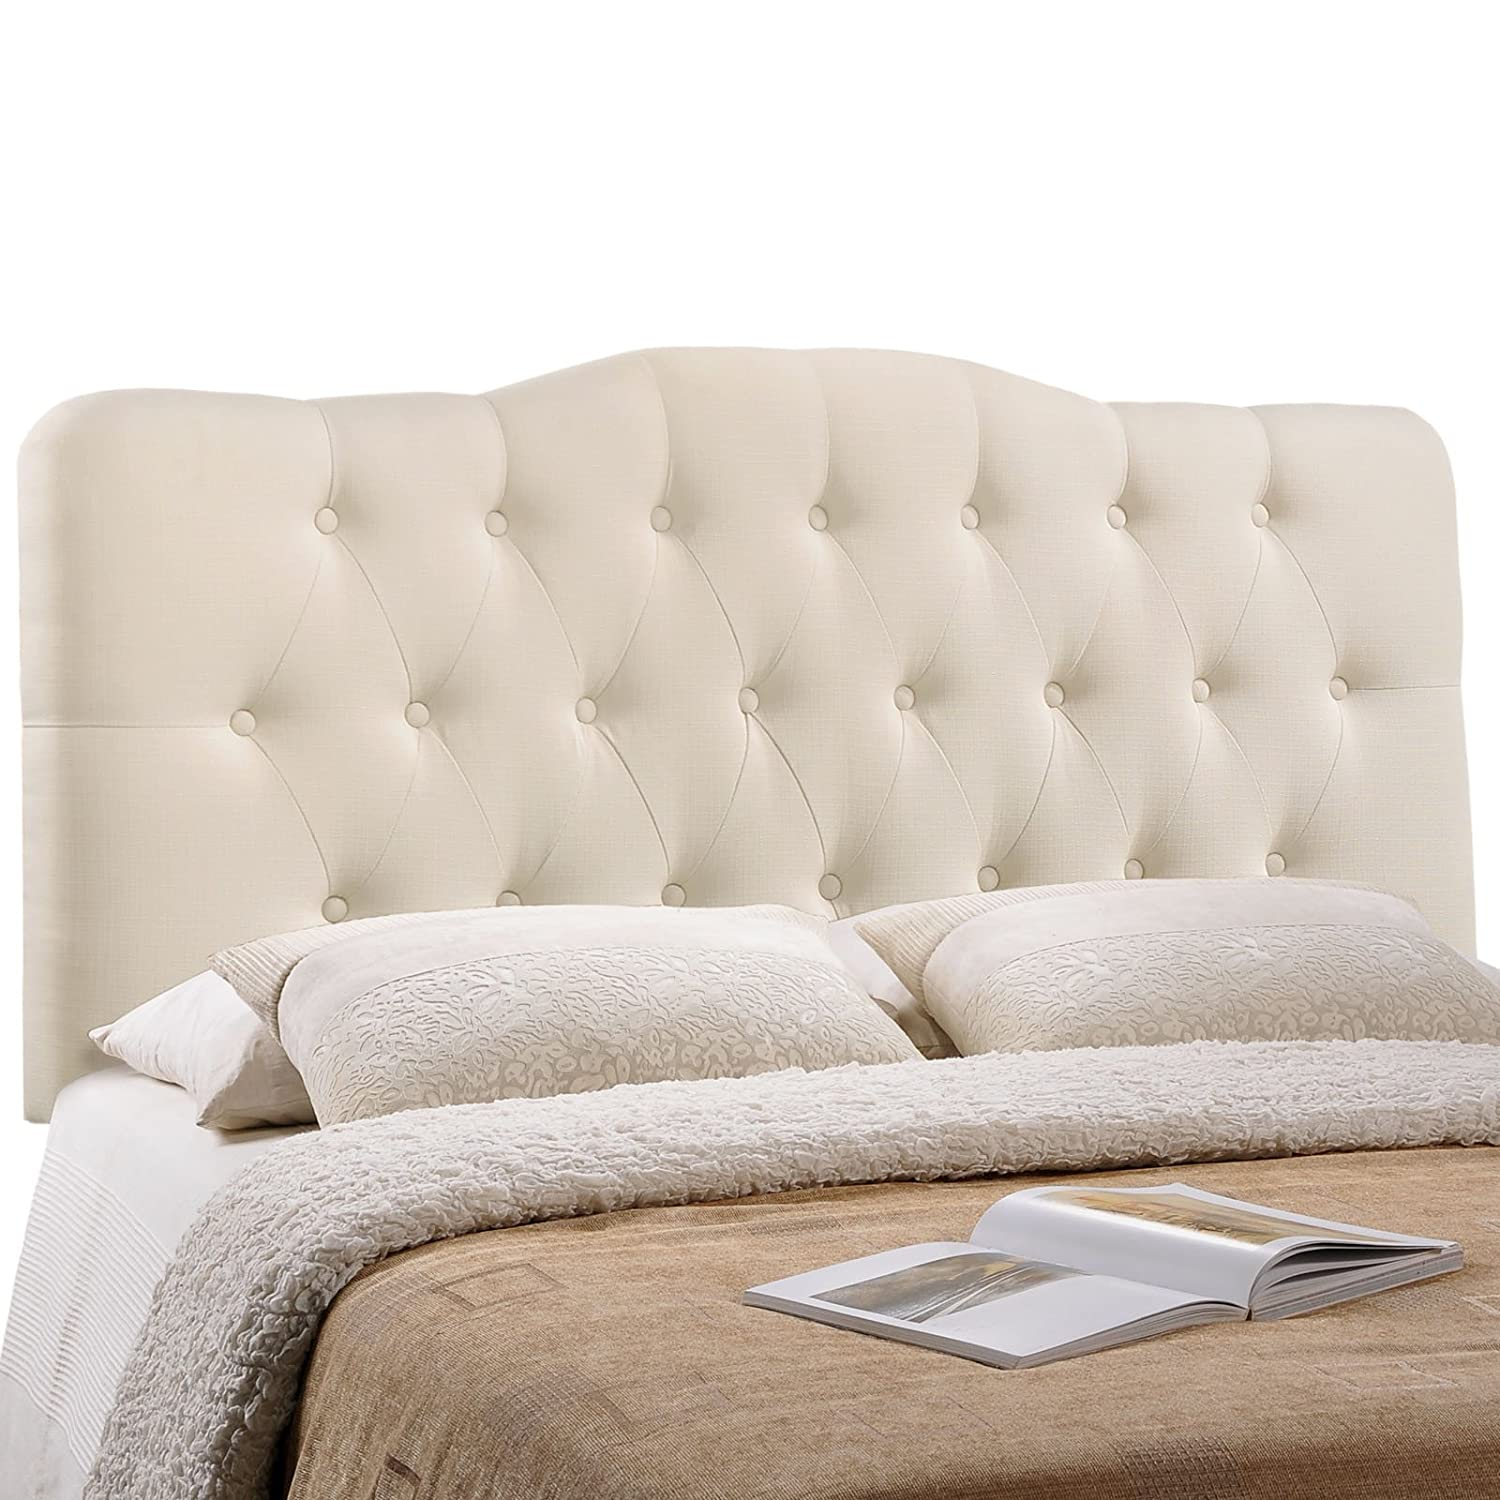 l linen bed headboard headboards tufted fabric lynn alessandra upholstered buttons white lili